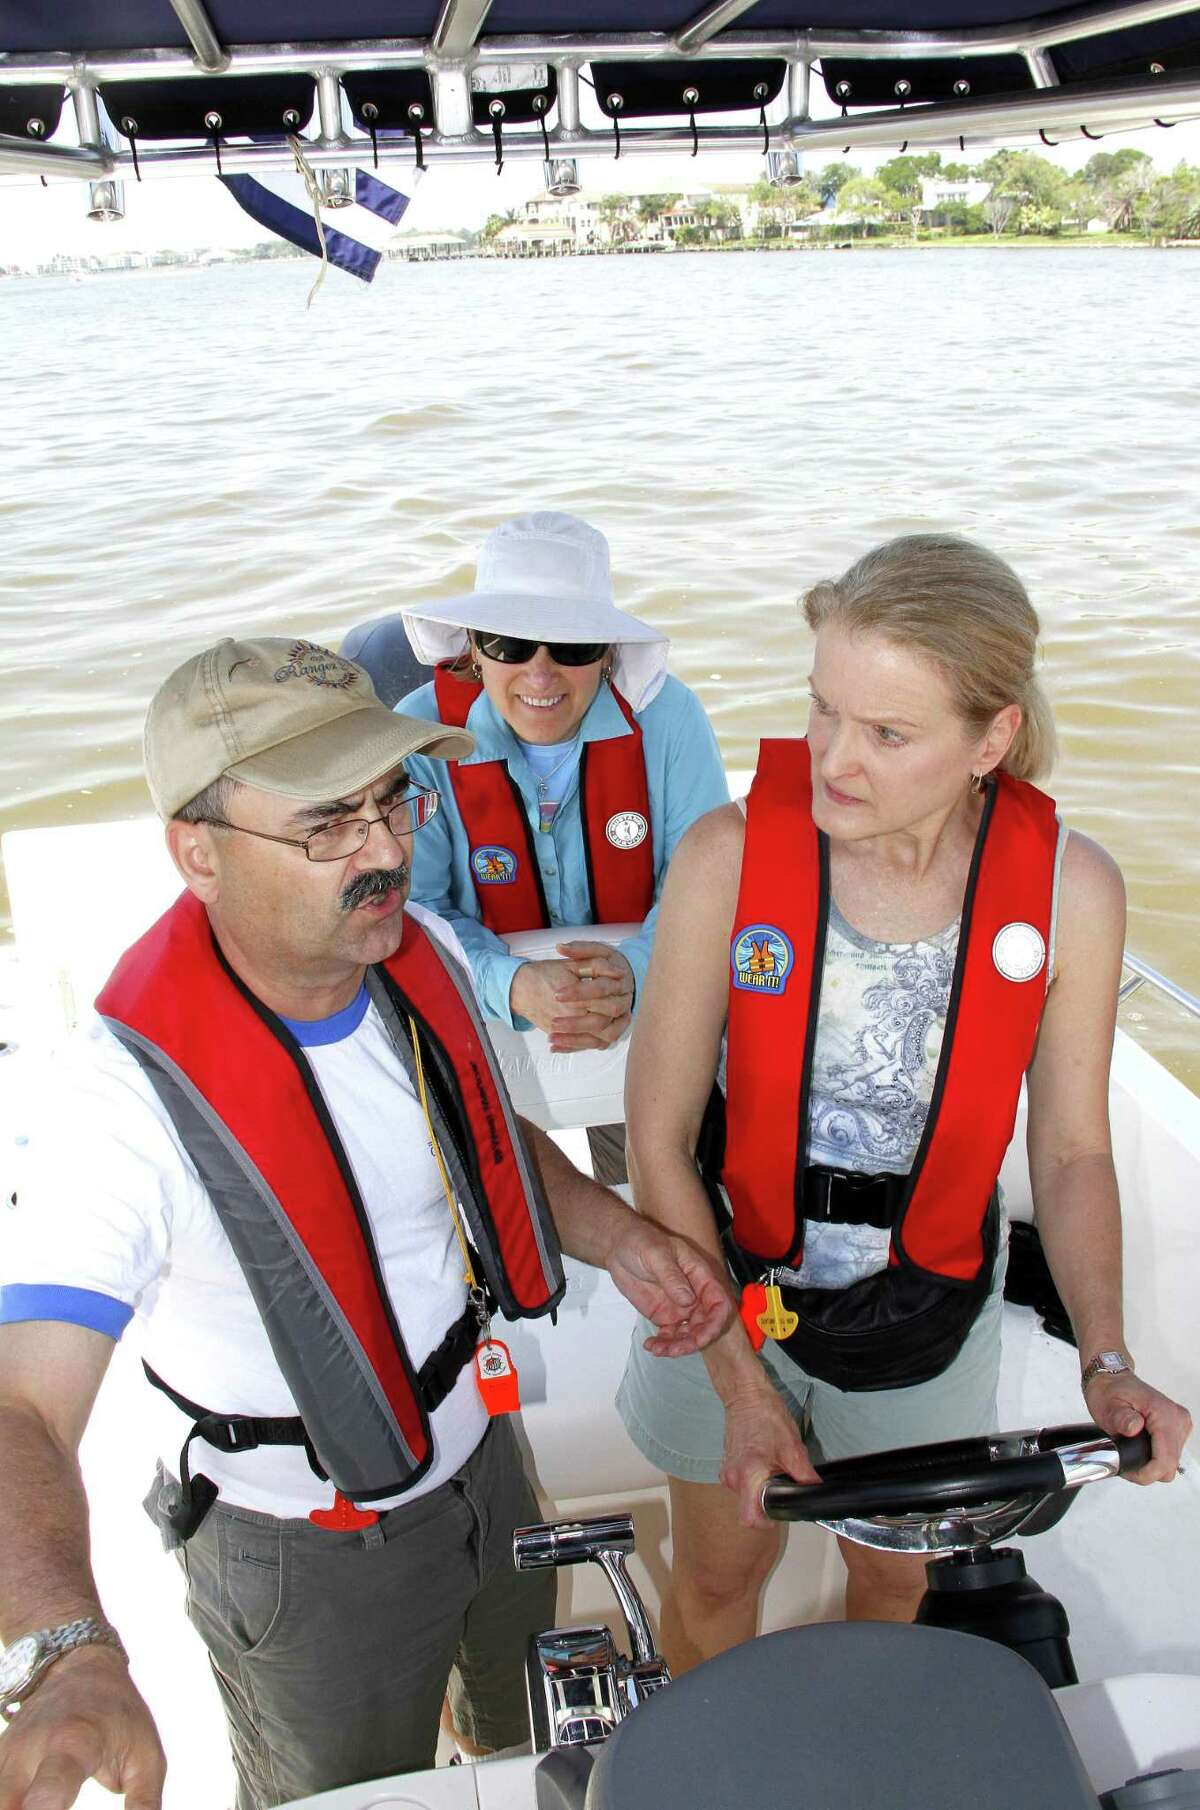 Wearing personal flotation devices - life jackets - is the simplest and most effective safety measure Texas boaters (and swimmers) can take. Annually, more than two-thirds of boating-related fatalities are caused by drowning.